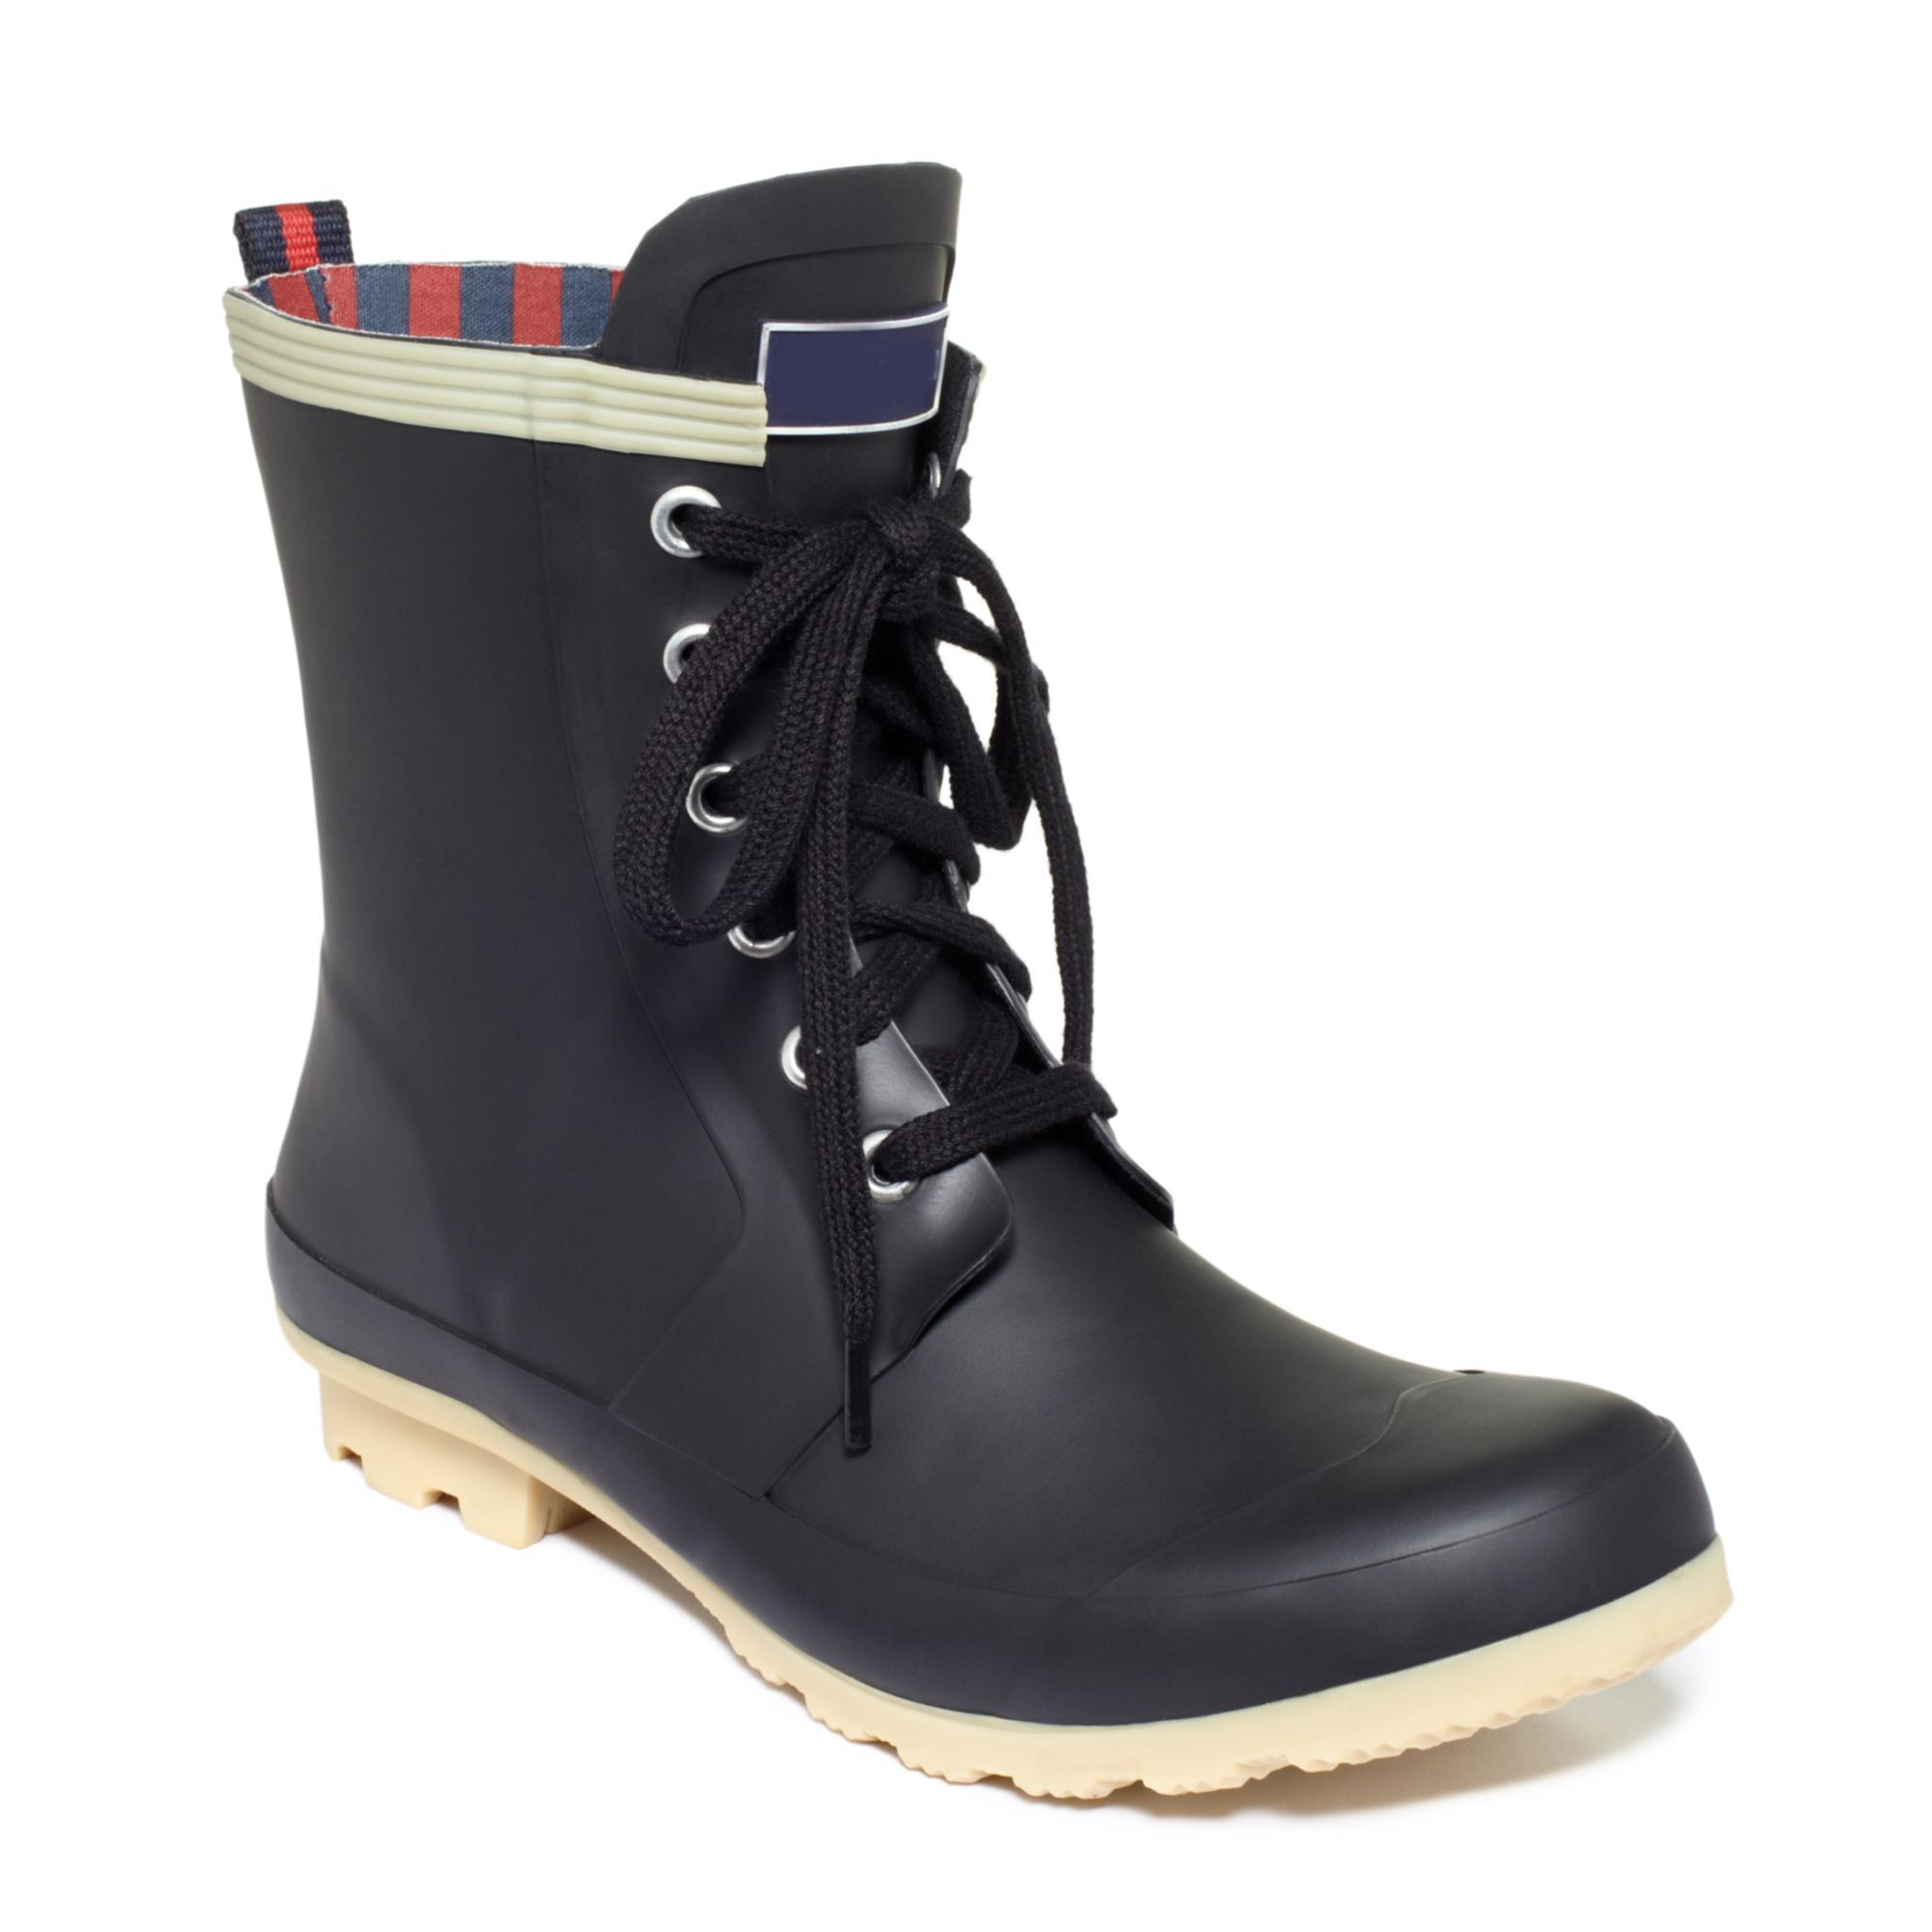 tommy hilfiger renegade rain booties in black lyst. Black Bedroom Furniture Sets. Home Design Ideas